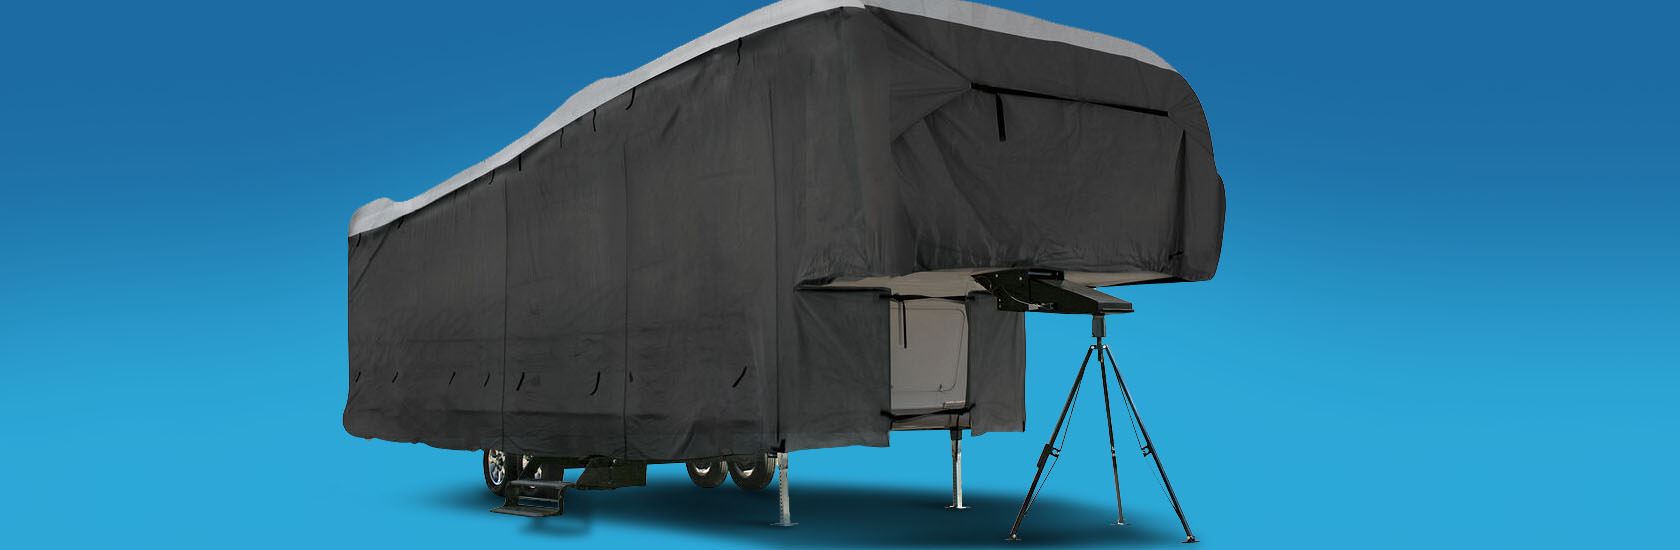 Shop a Wide Selection of RV Covers!